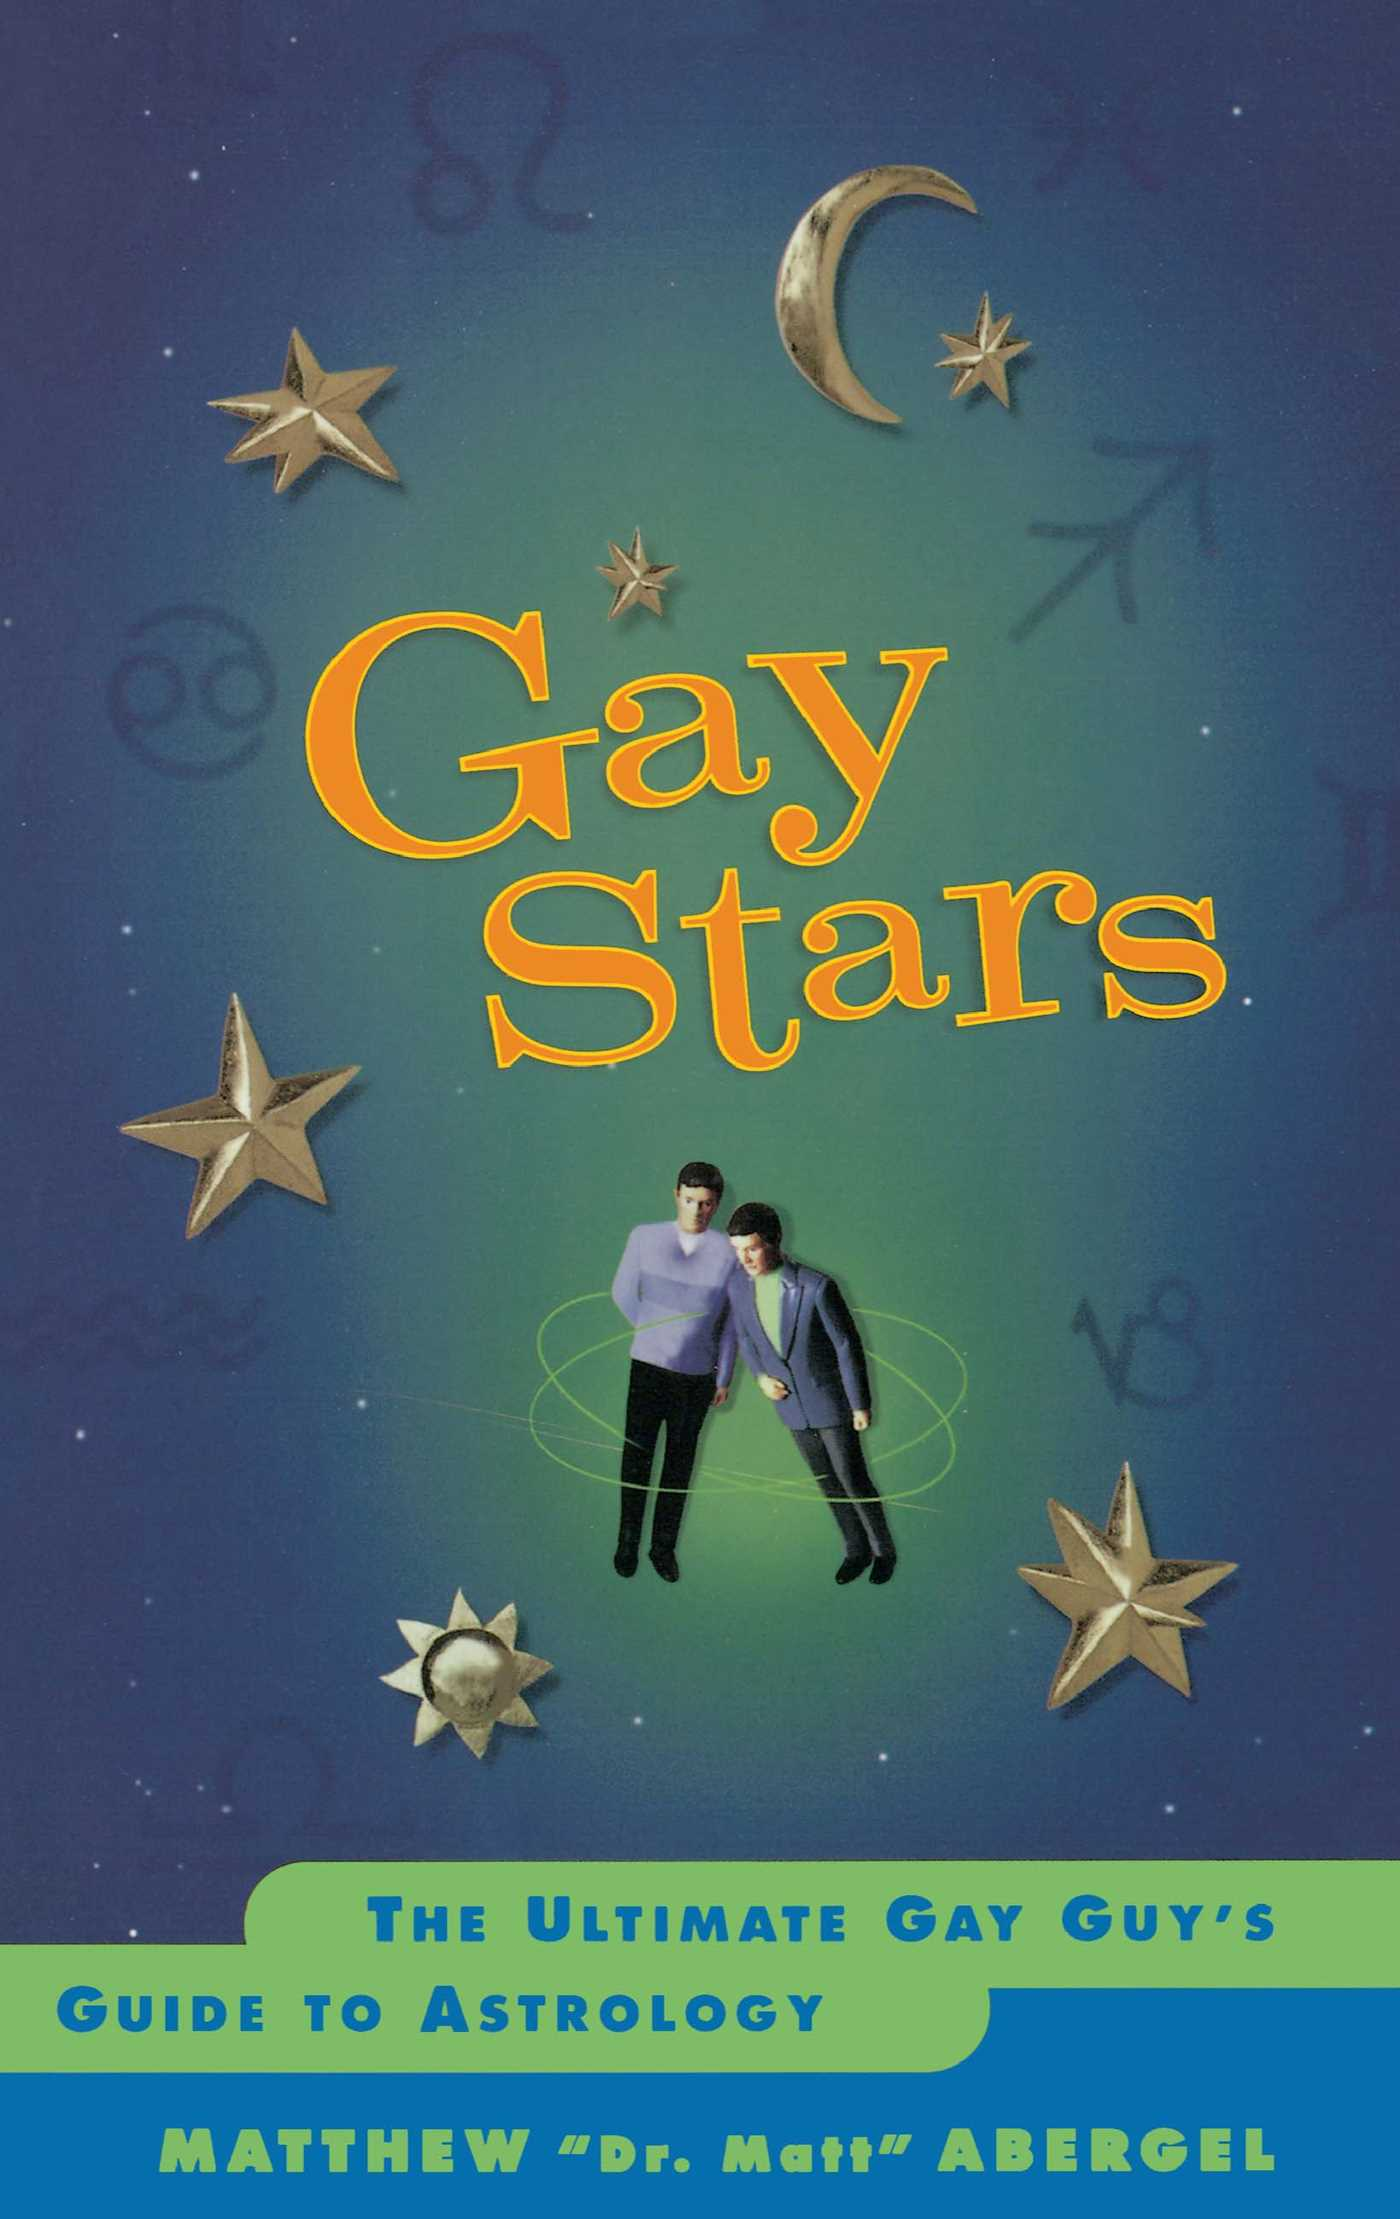 gay book publisher jpg 422x640